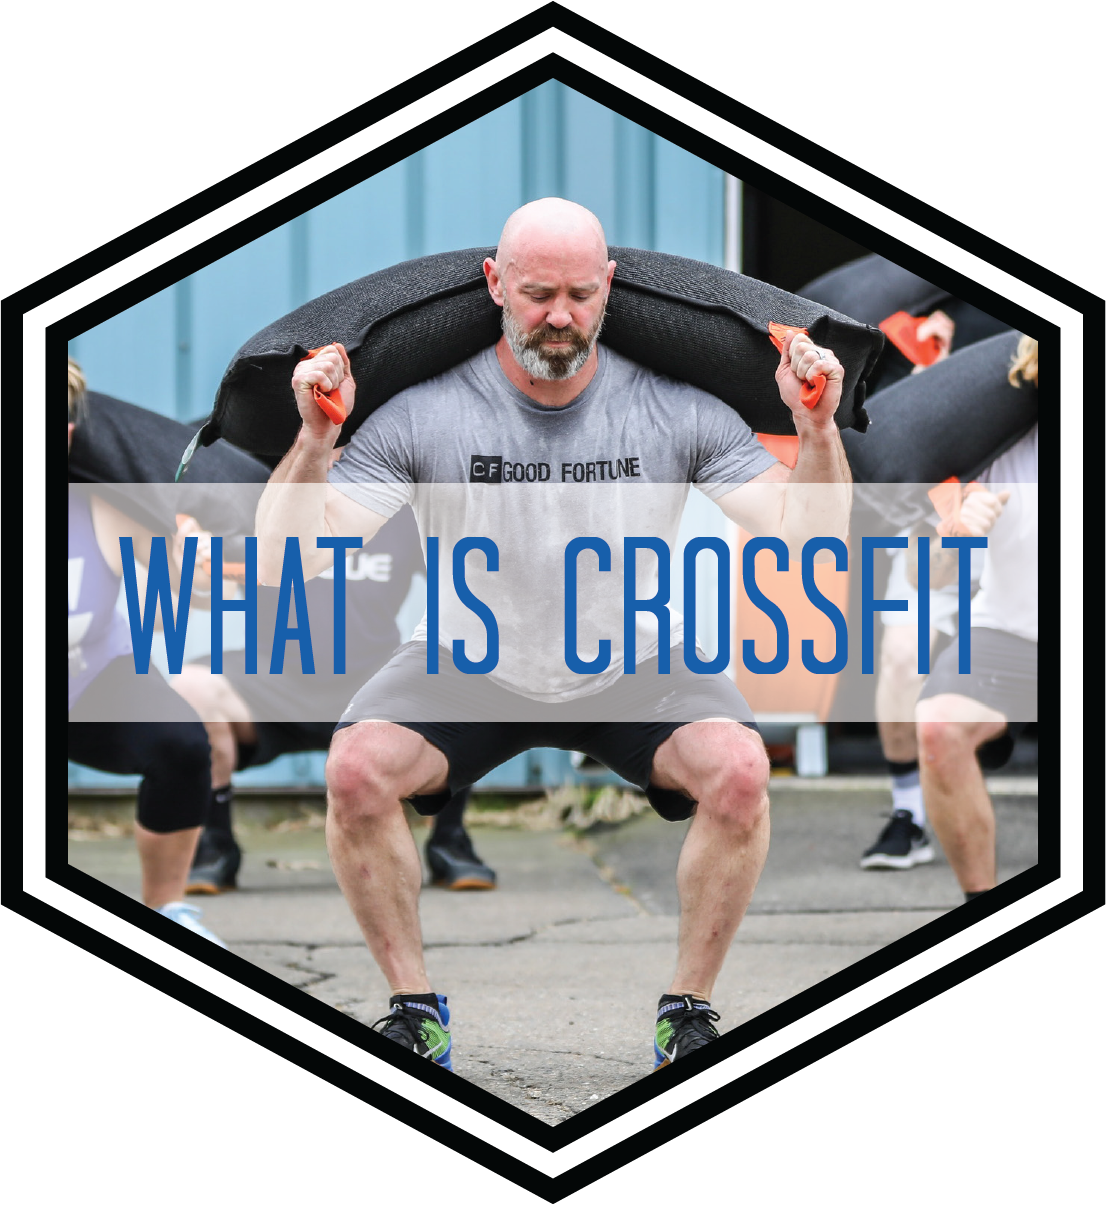 CrossFit Good Fortune : What is CrossFit